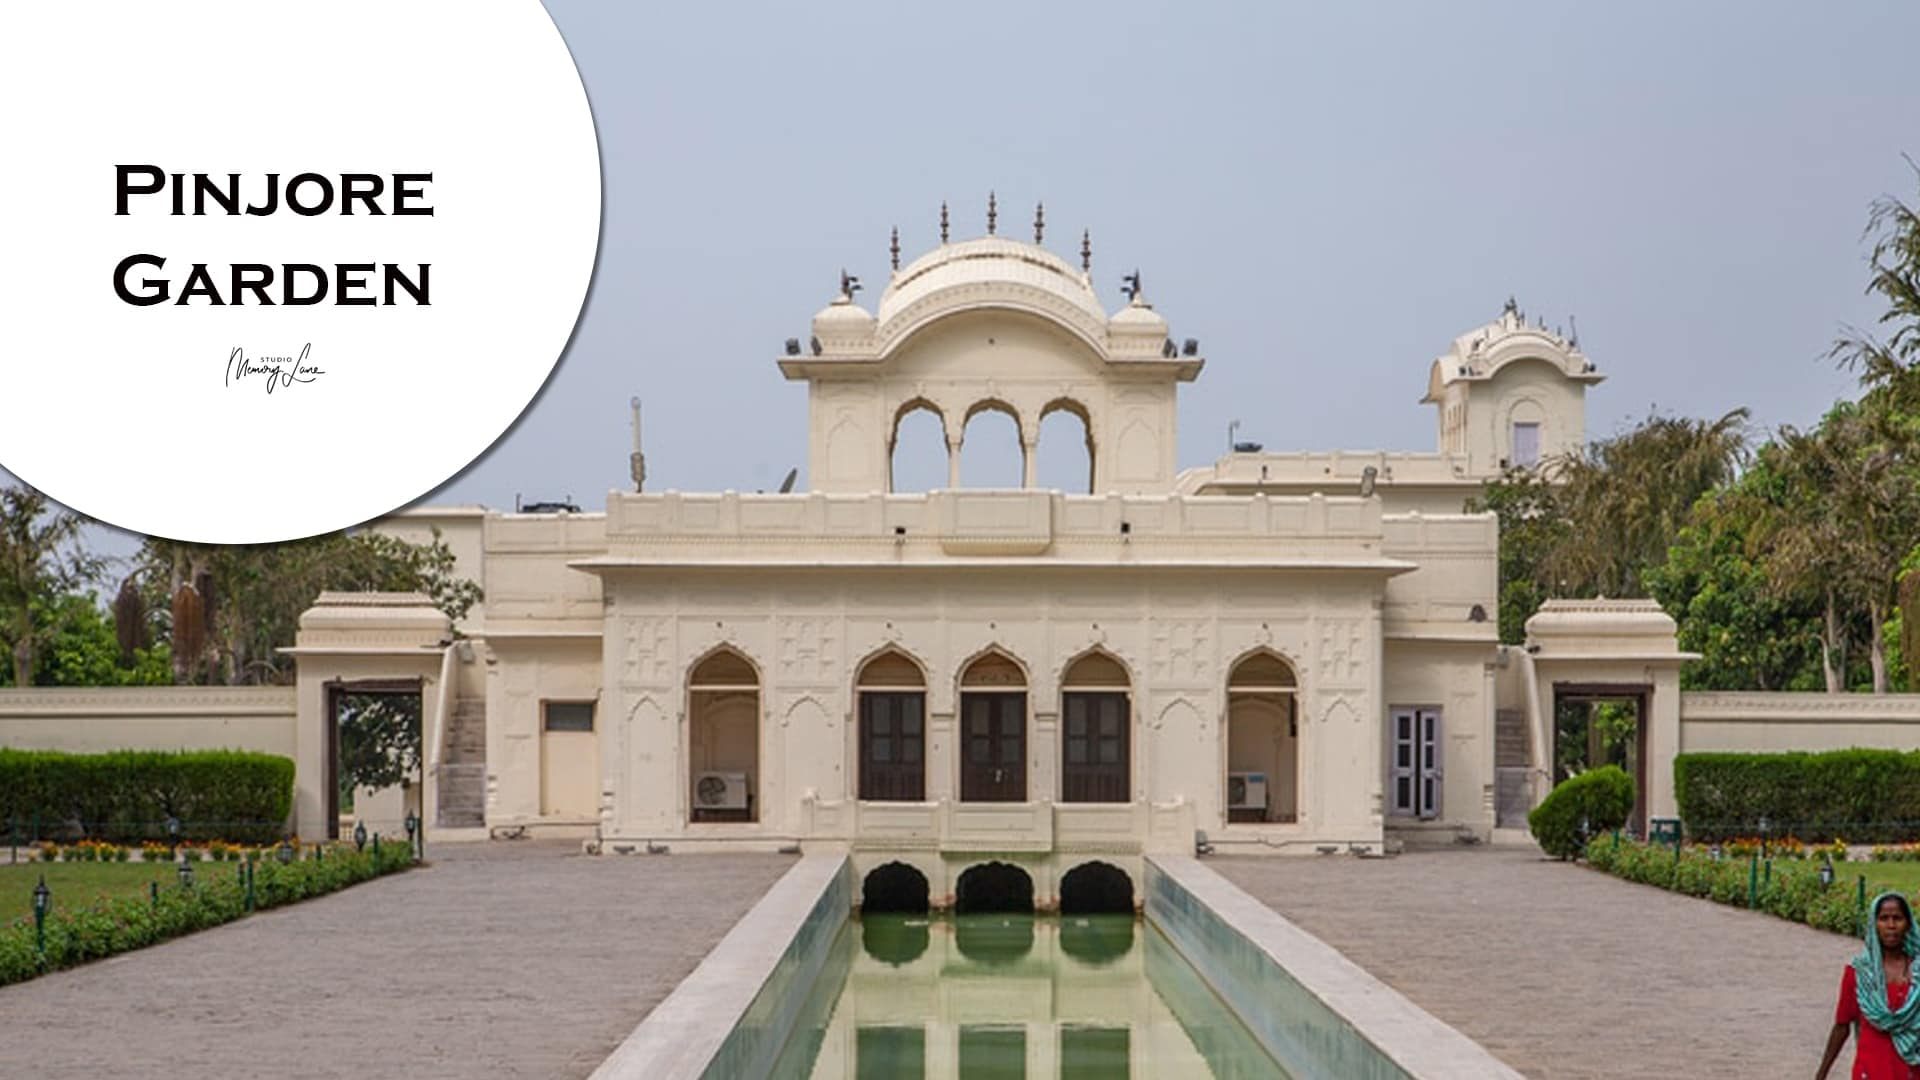 Pinjore Garden - pre wedding locations in Chandigarh